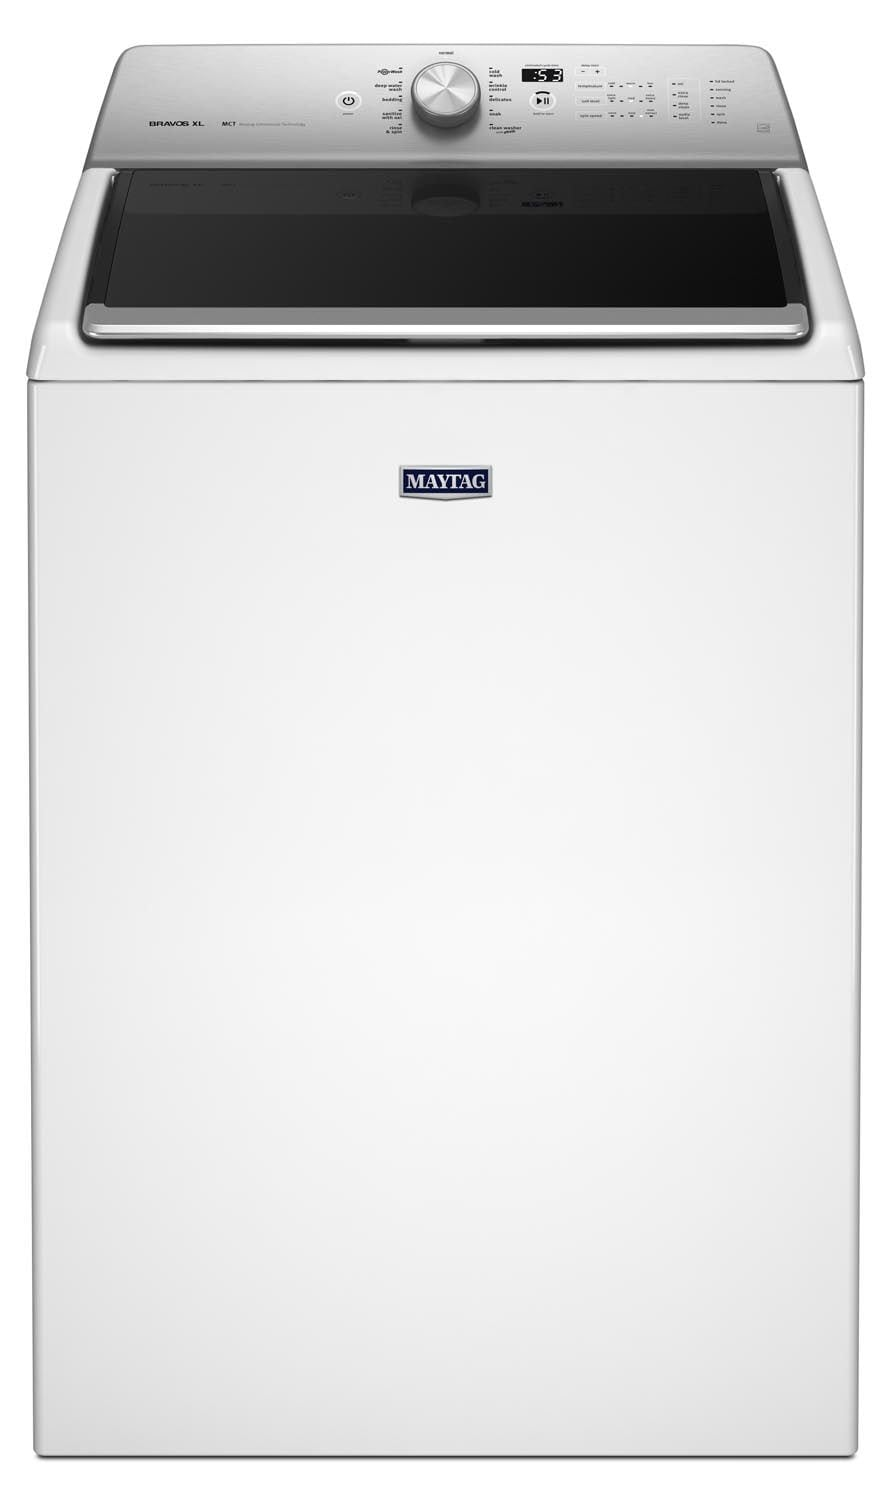 Washers and Dryers - Maytag White Top-Load Washer (6.1 Cu. Ft.) - MVWB835DW